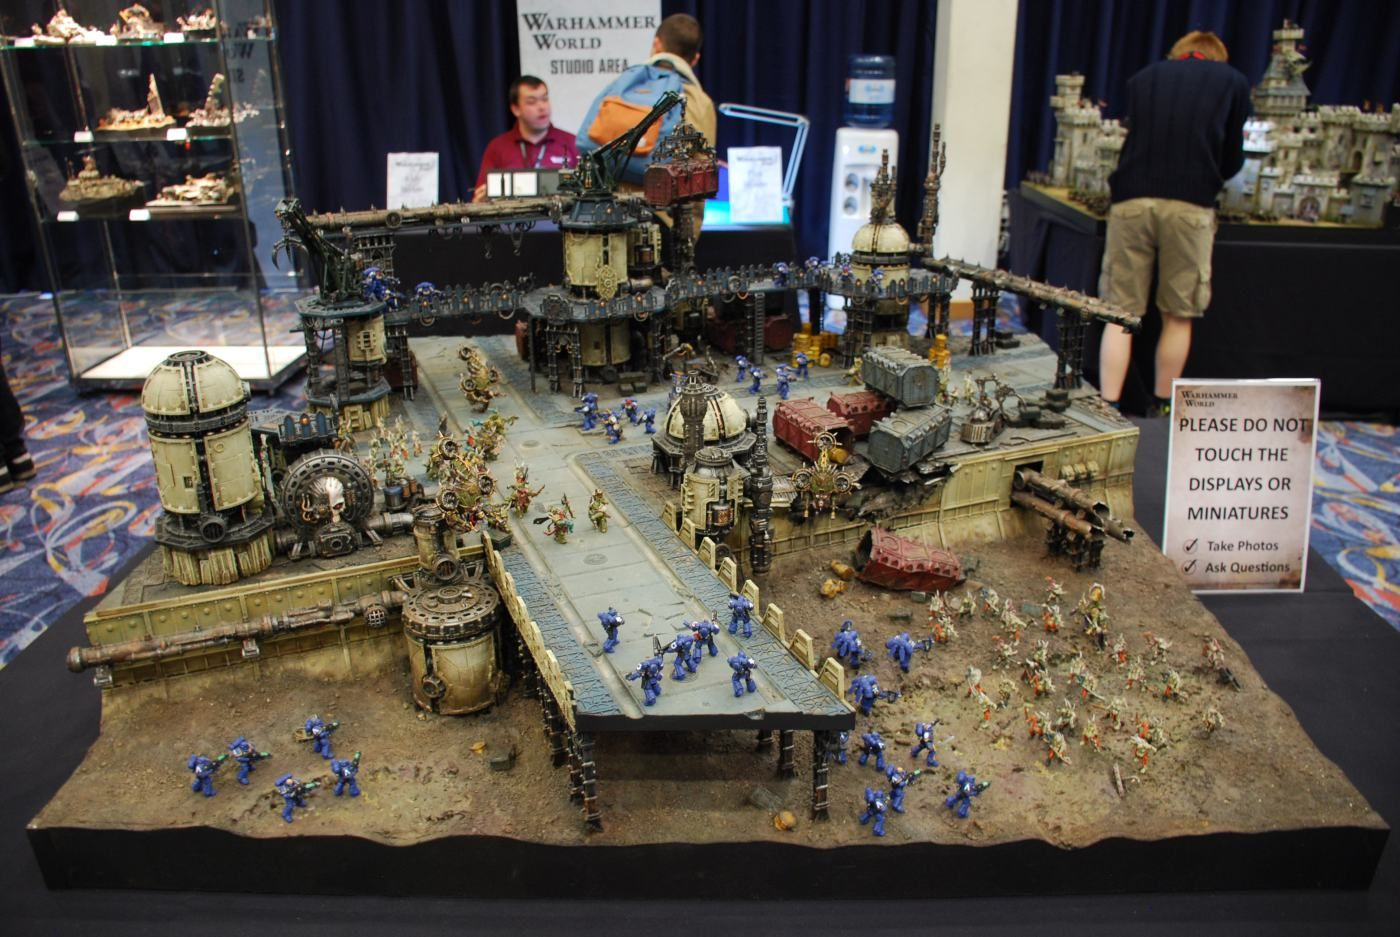 Warhammer 40k 8th Edition Display | terrain | 40k terrain, Warhammer